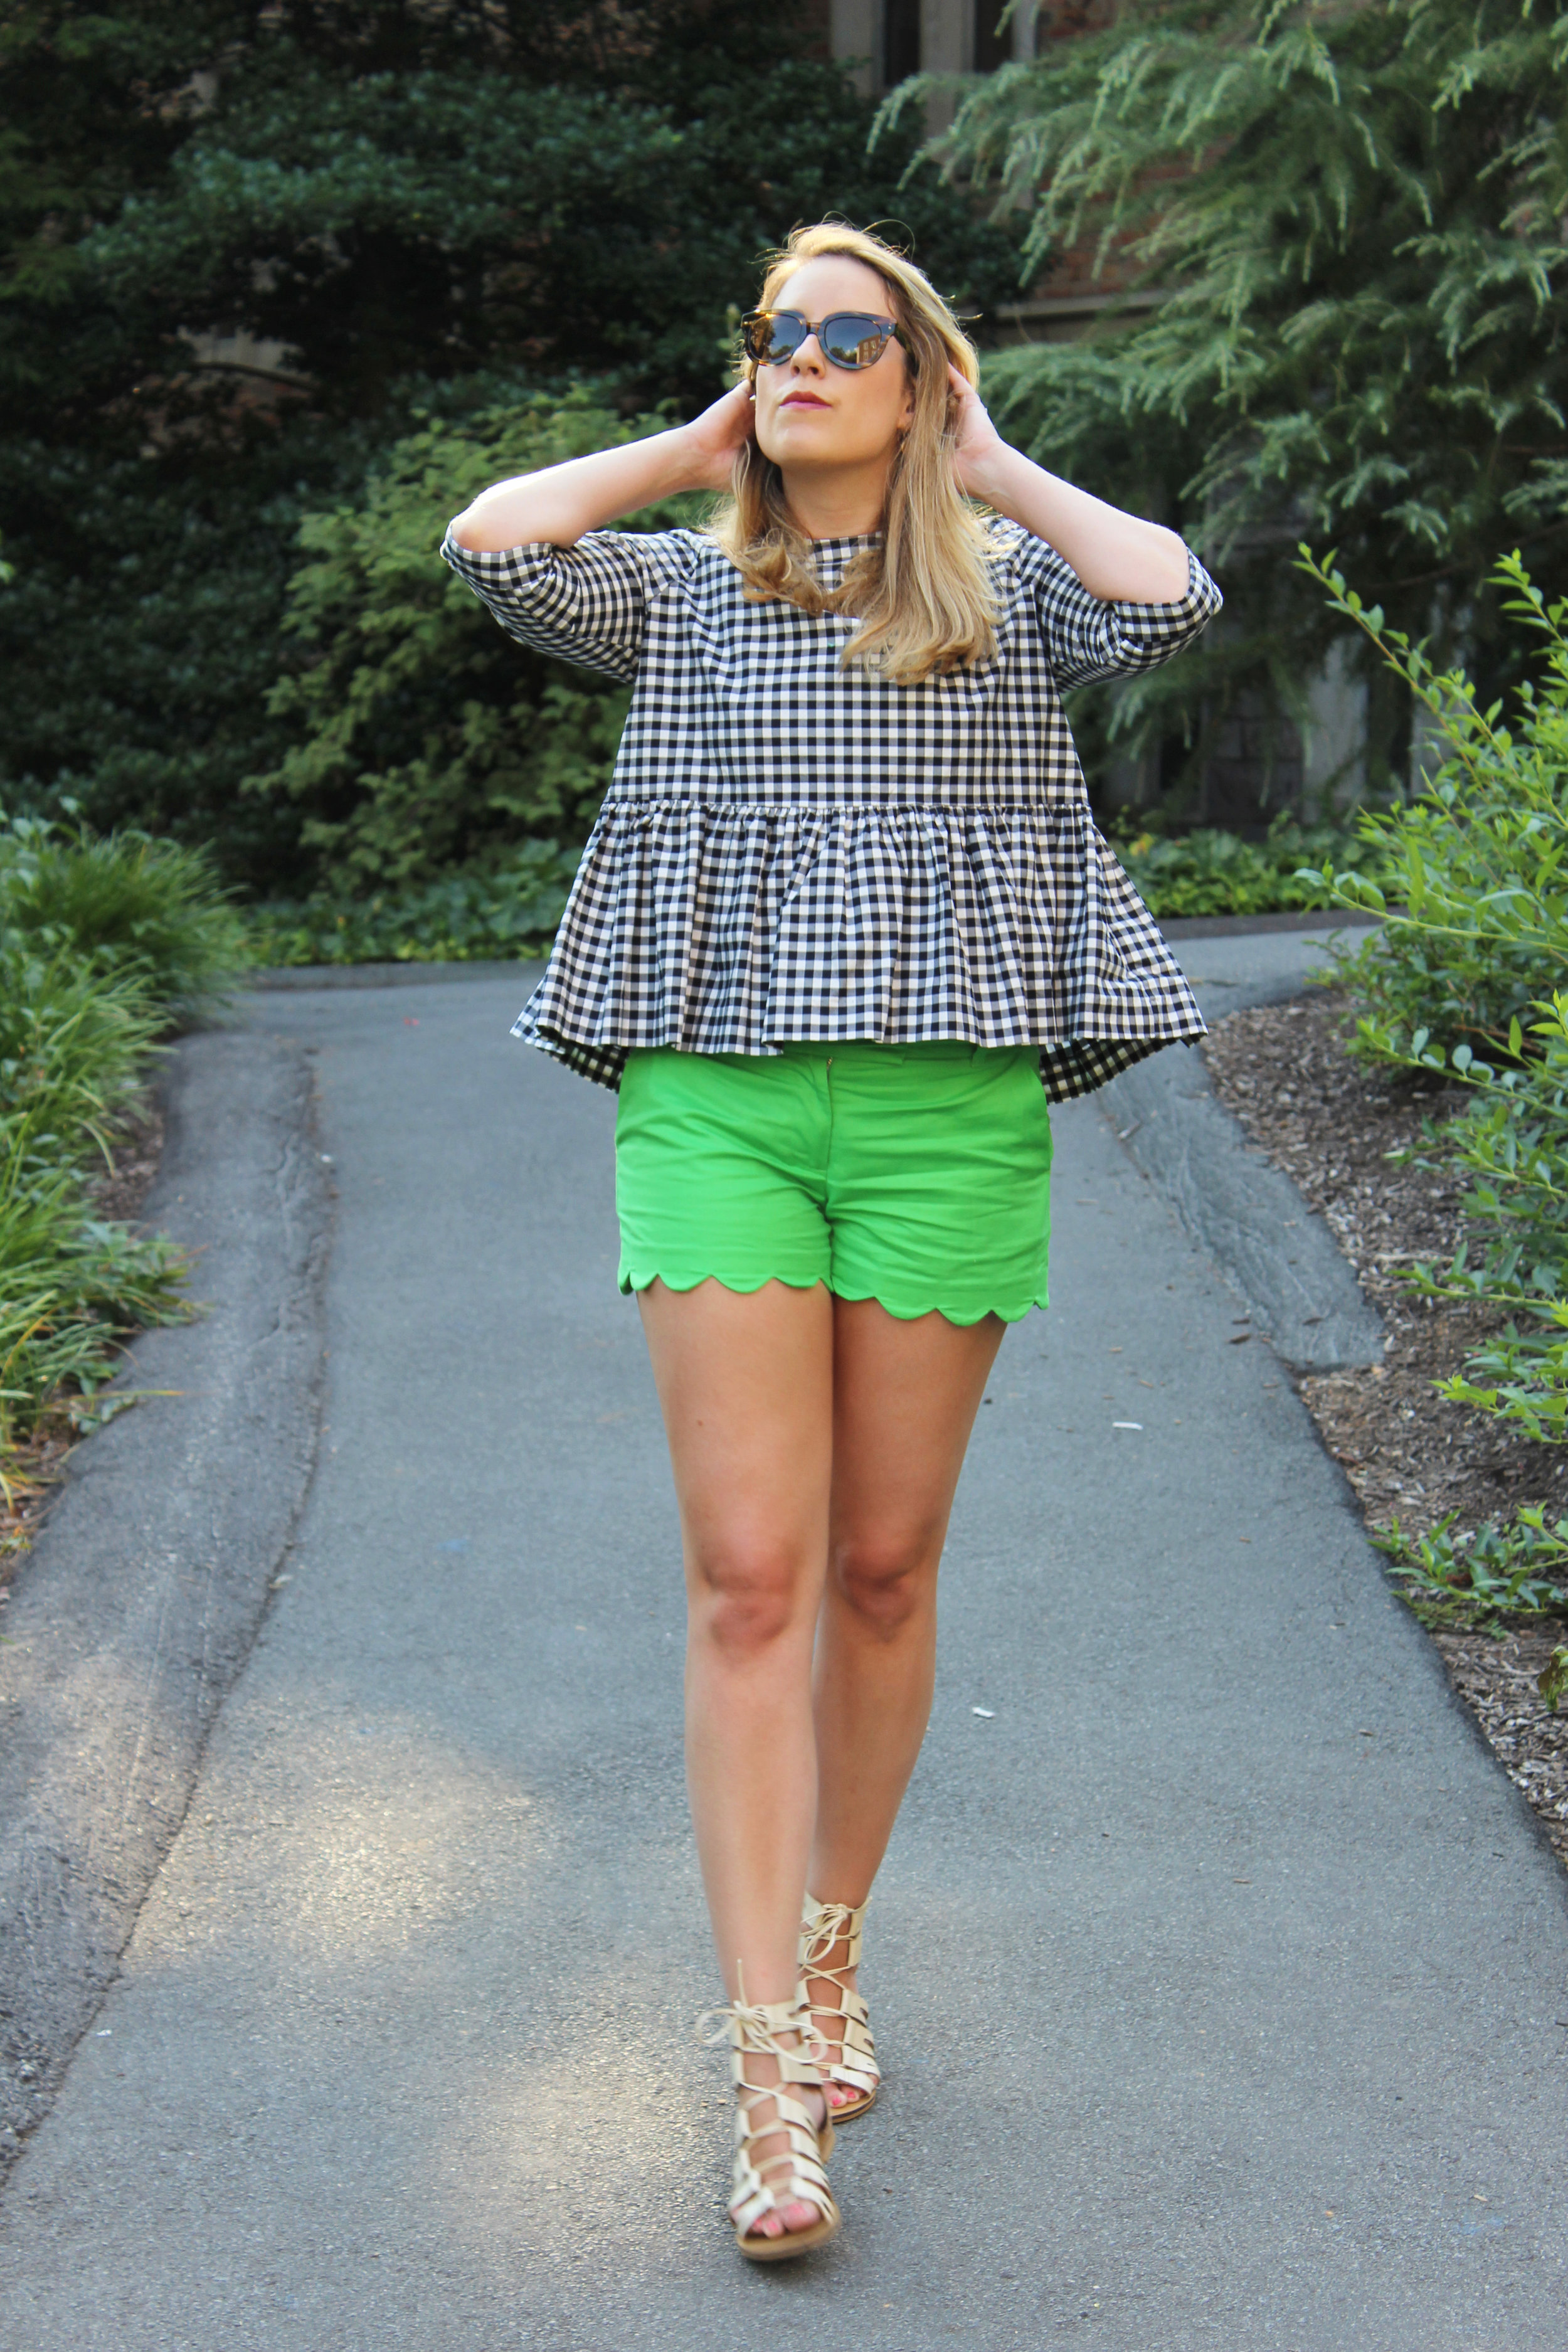 Mixing unexpected styles leads to amazing results